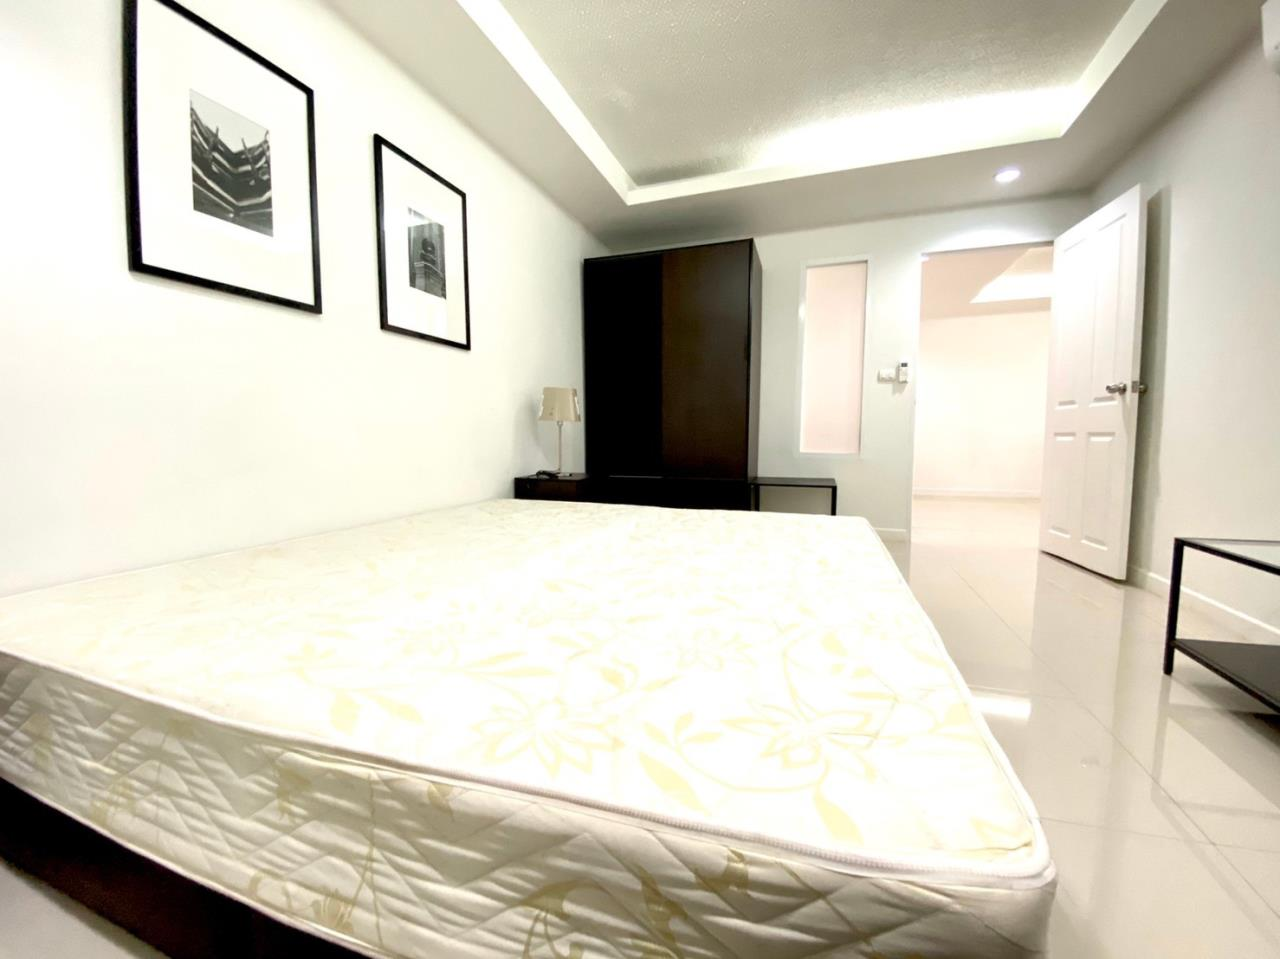 Bestbkkcondos Agency's Waterford 50 2 bedrooms 2 bathrooms 96.8 sqm. 8th Floor for sale 6.582mTHB Rental 28000THB 14